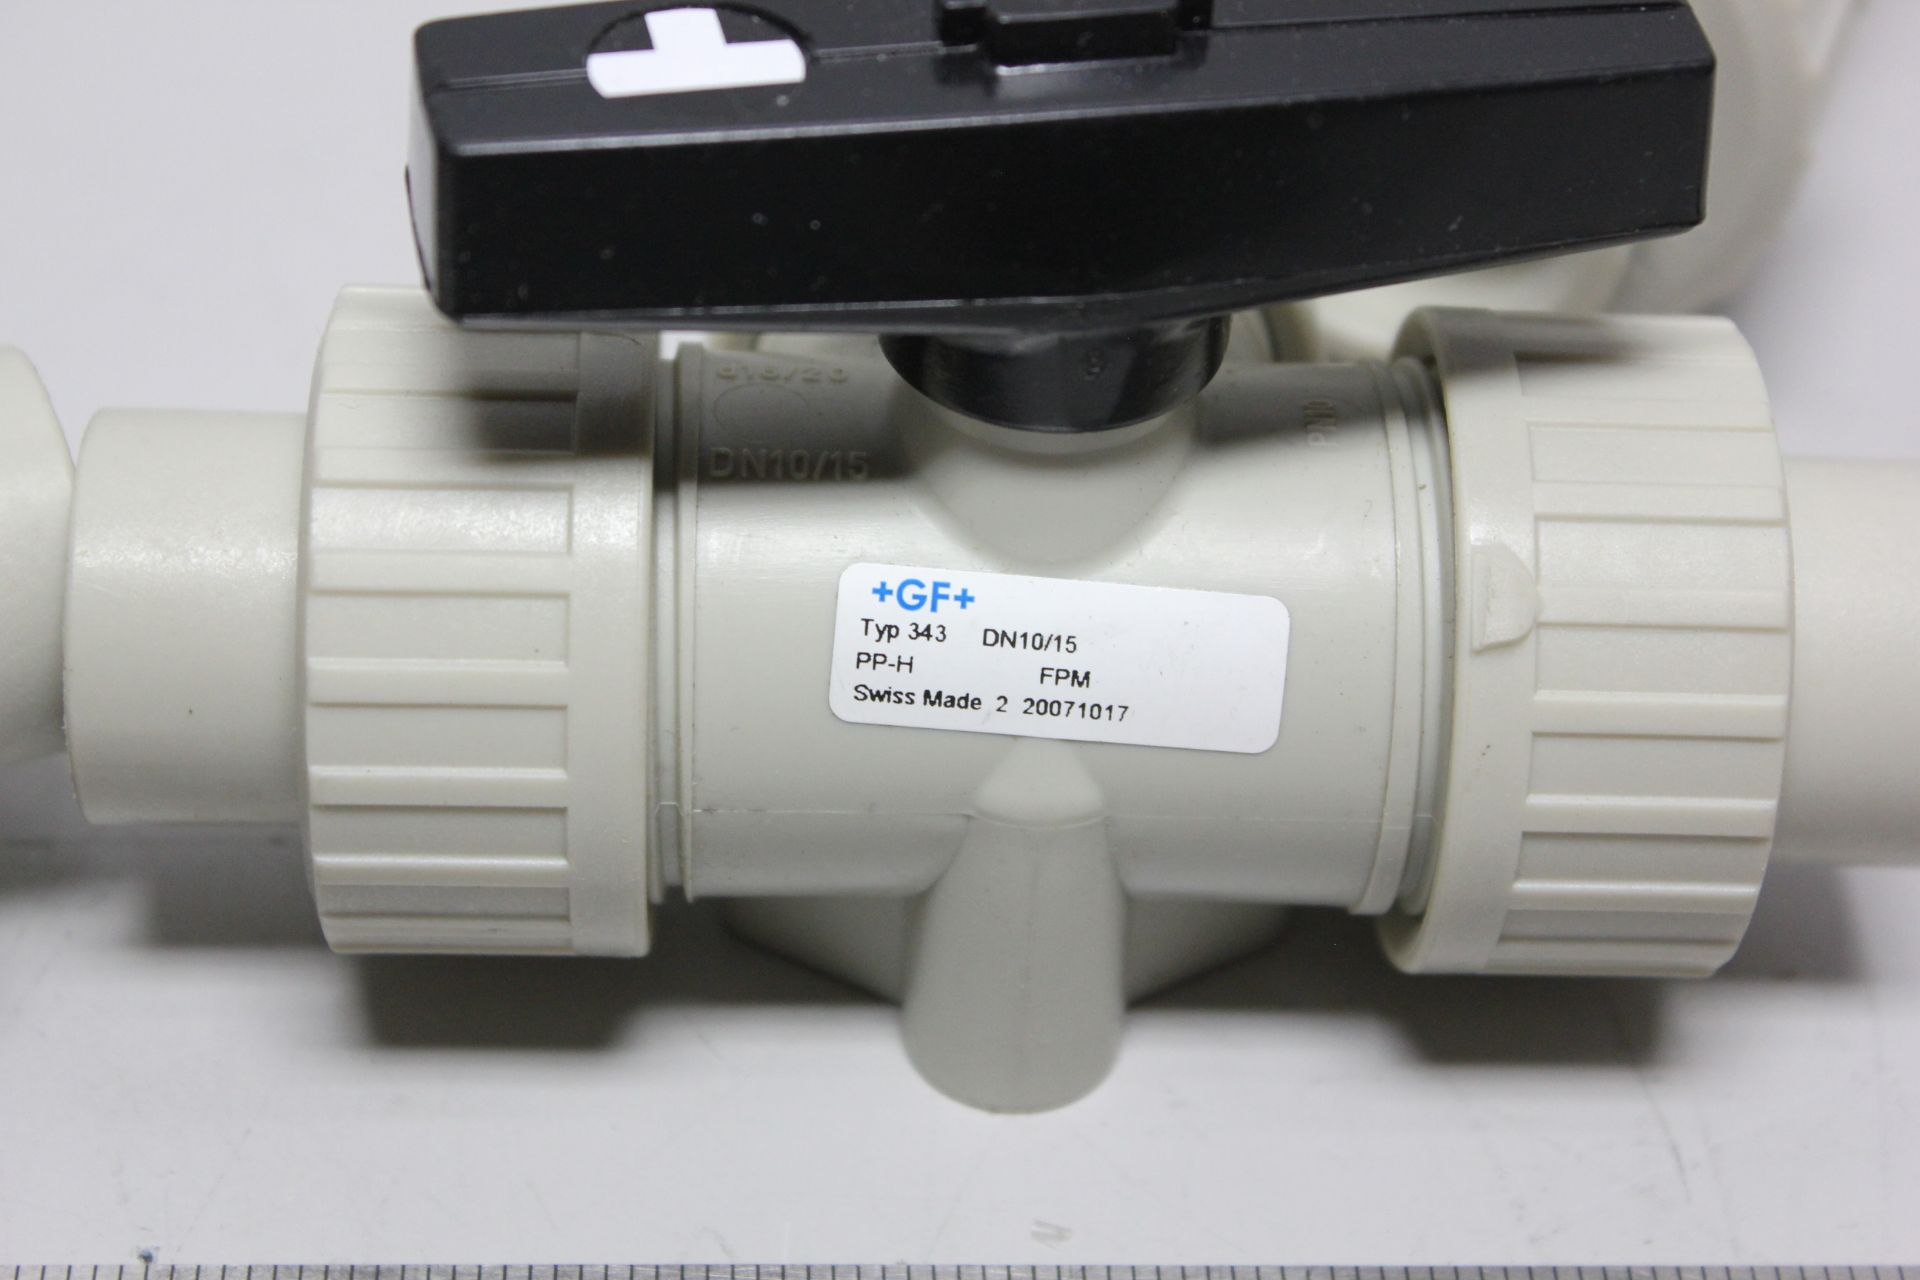 LOT OF UNUSED GEORG FISCHER BALL VALVES - Image 3 of 4